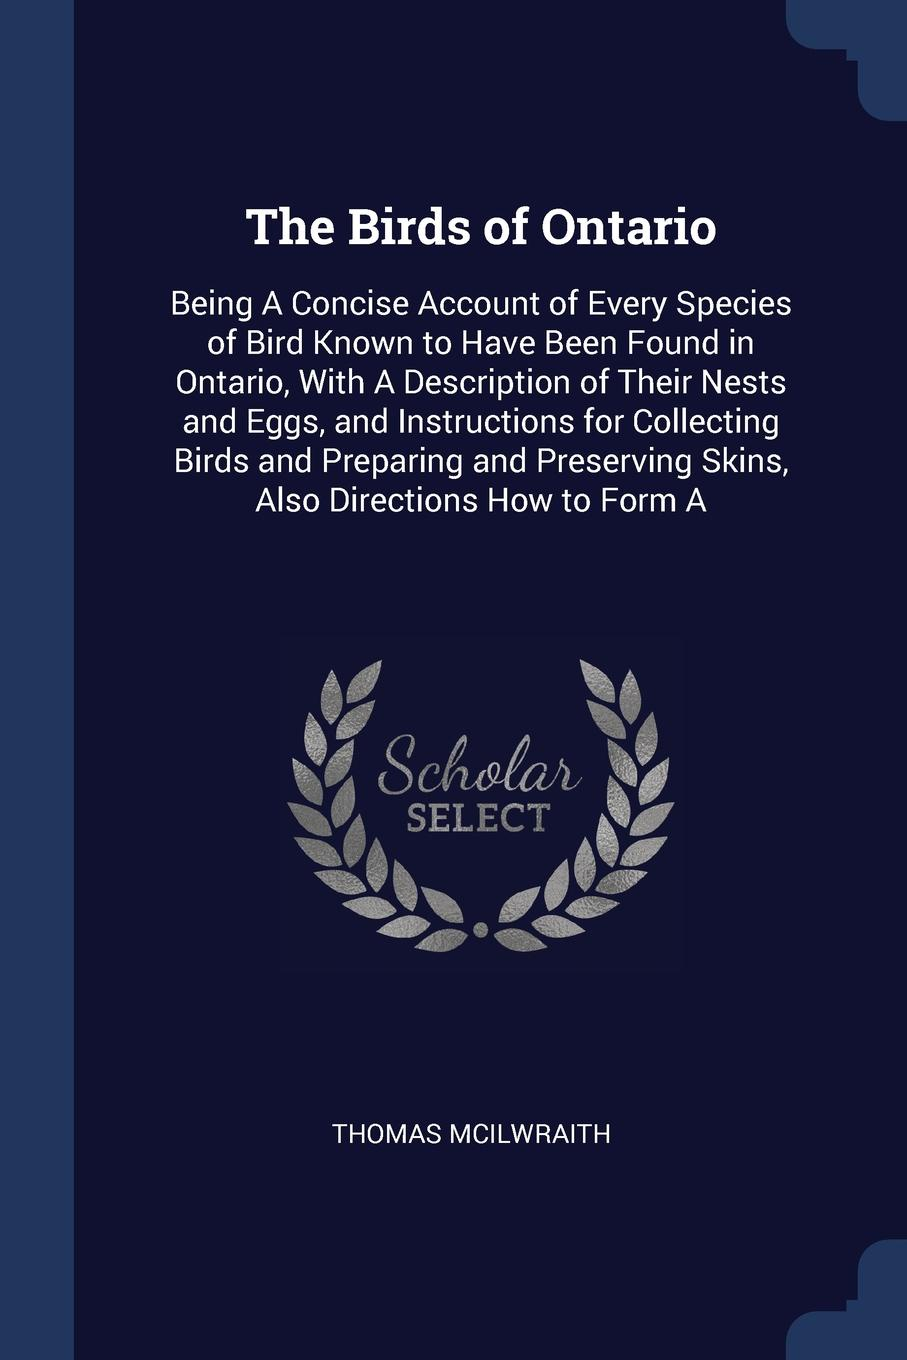 Фото - Thomas McIlwraith The Birds of Ontario. Being A Concise Account of Every Species of Bird Known to Have Been Found in Ontario, With A Description of Their Nests and Eggs, and Instructions for Collecting Birds and Preparing and Preserving Skins, Also Directions How t... william leon dawson the birds of ohio a complete scientific and popular description of the 320 species of birds found in the state volume 2